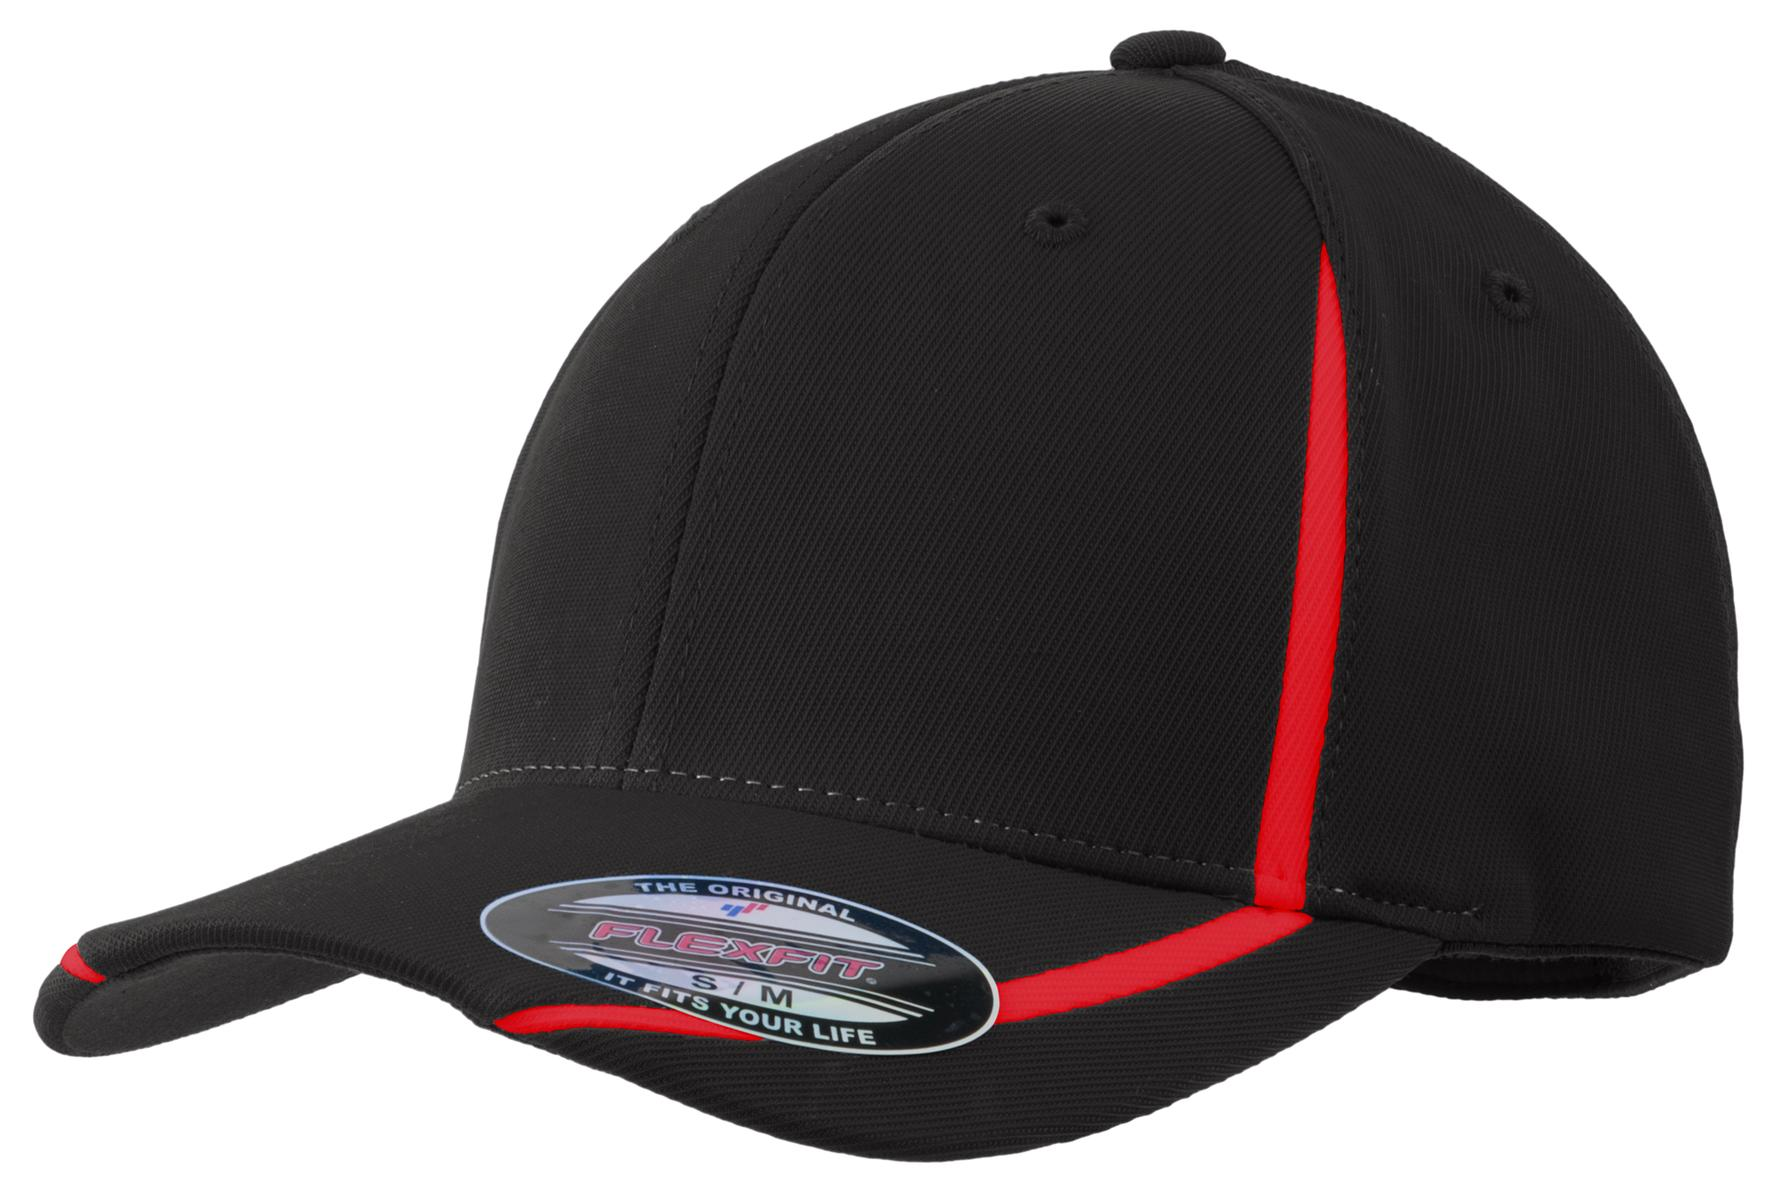 Sport-Tek ®  Flexfit ®  Performance Colorblock Cap. STC16 - Black/True Red